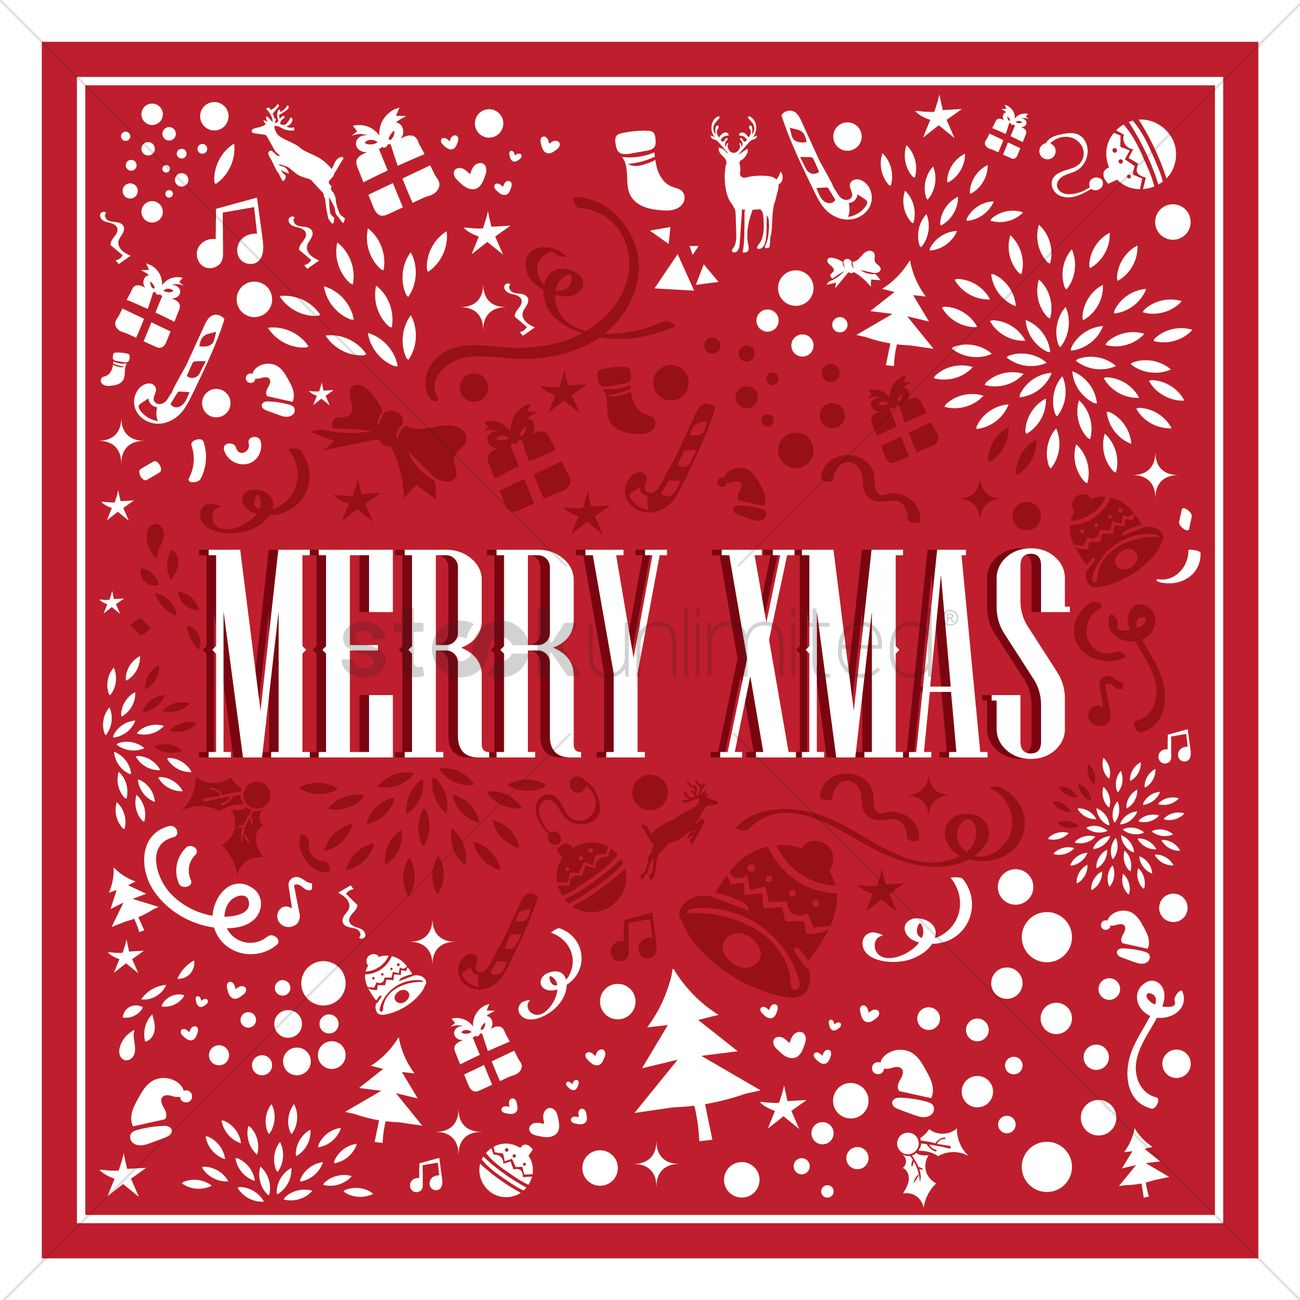 merry x-mas card design vector image - 1745438 | stockunlimited